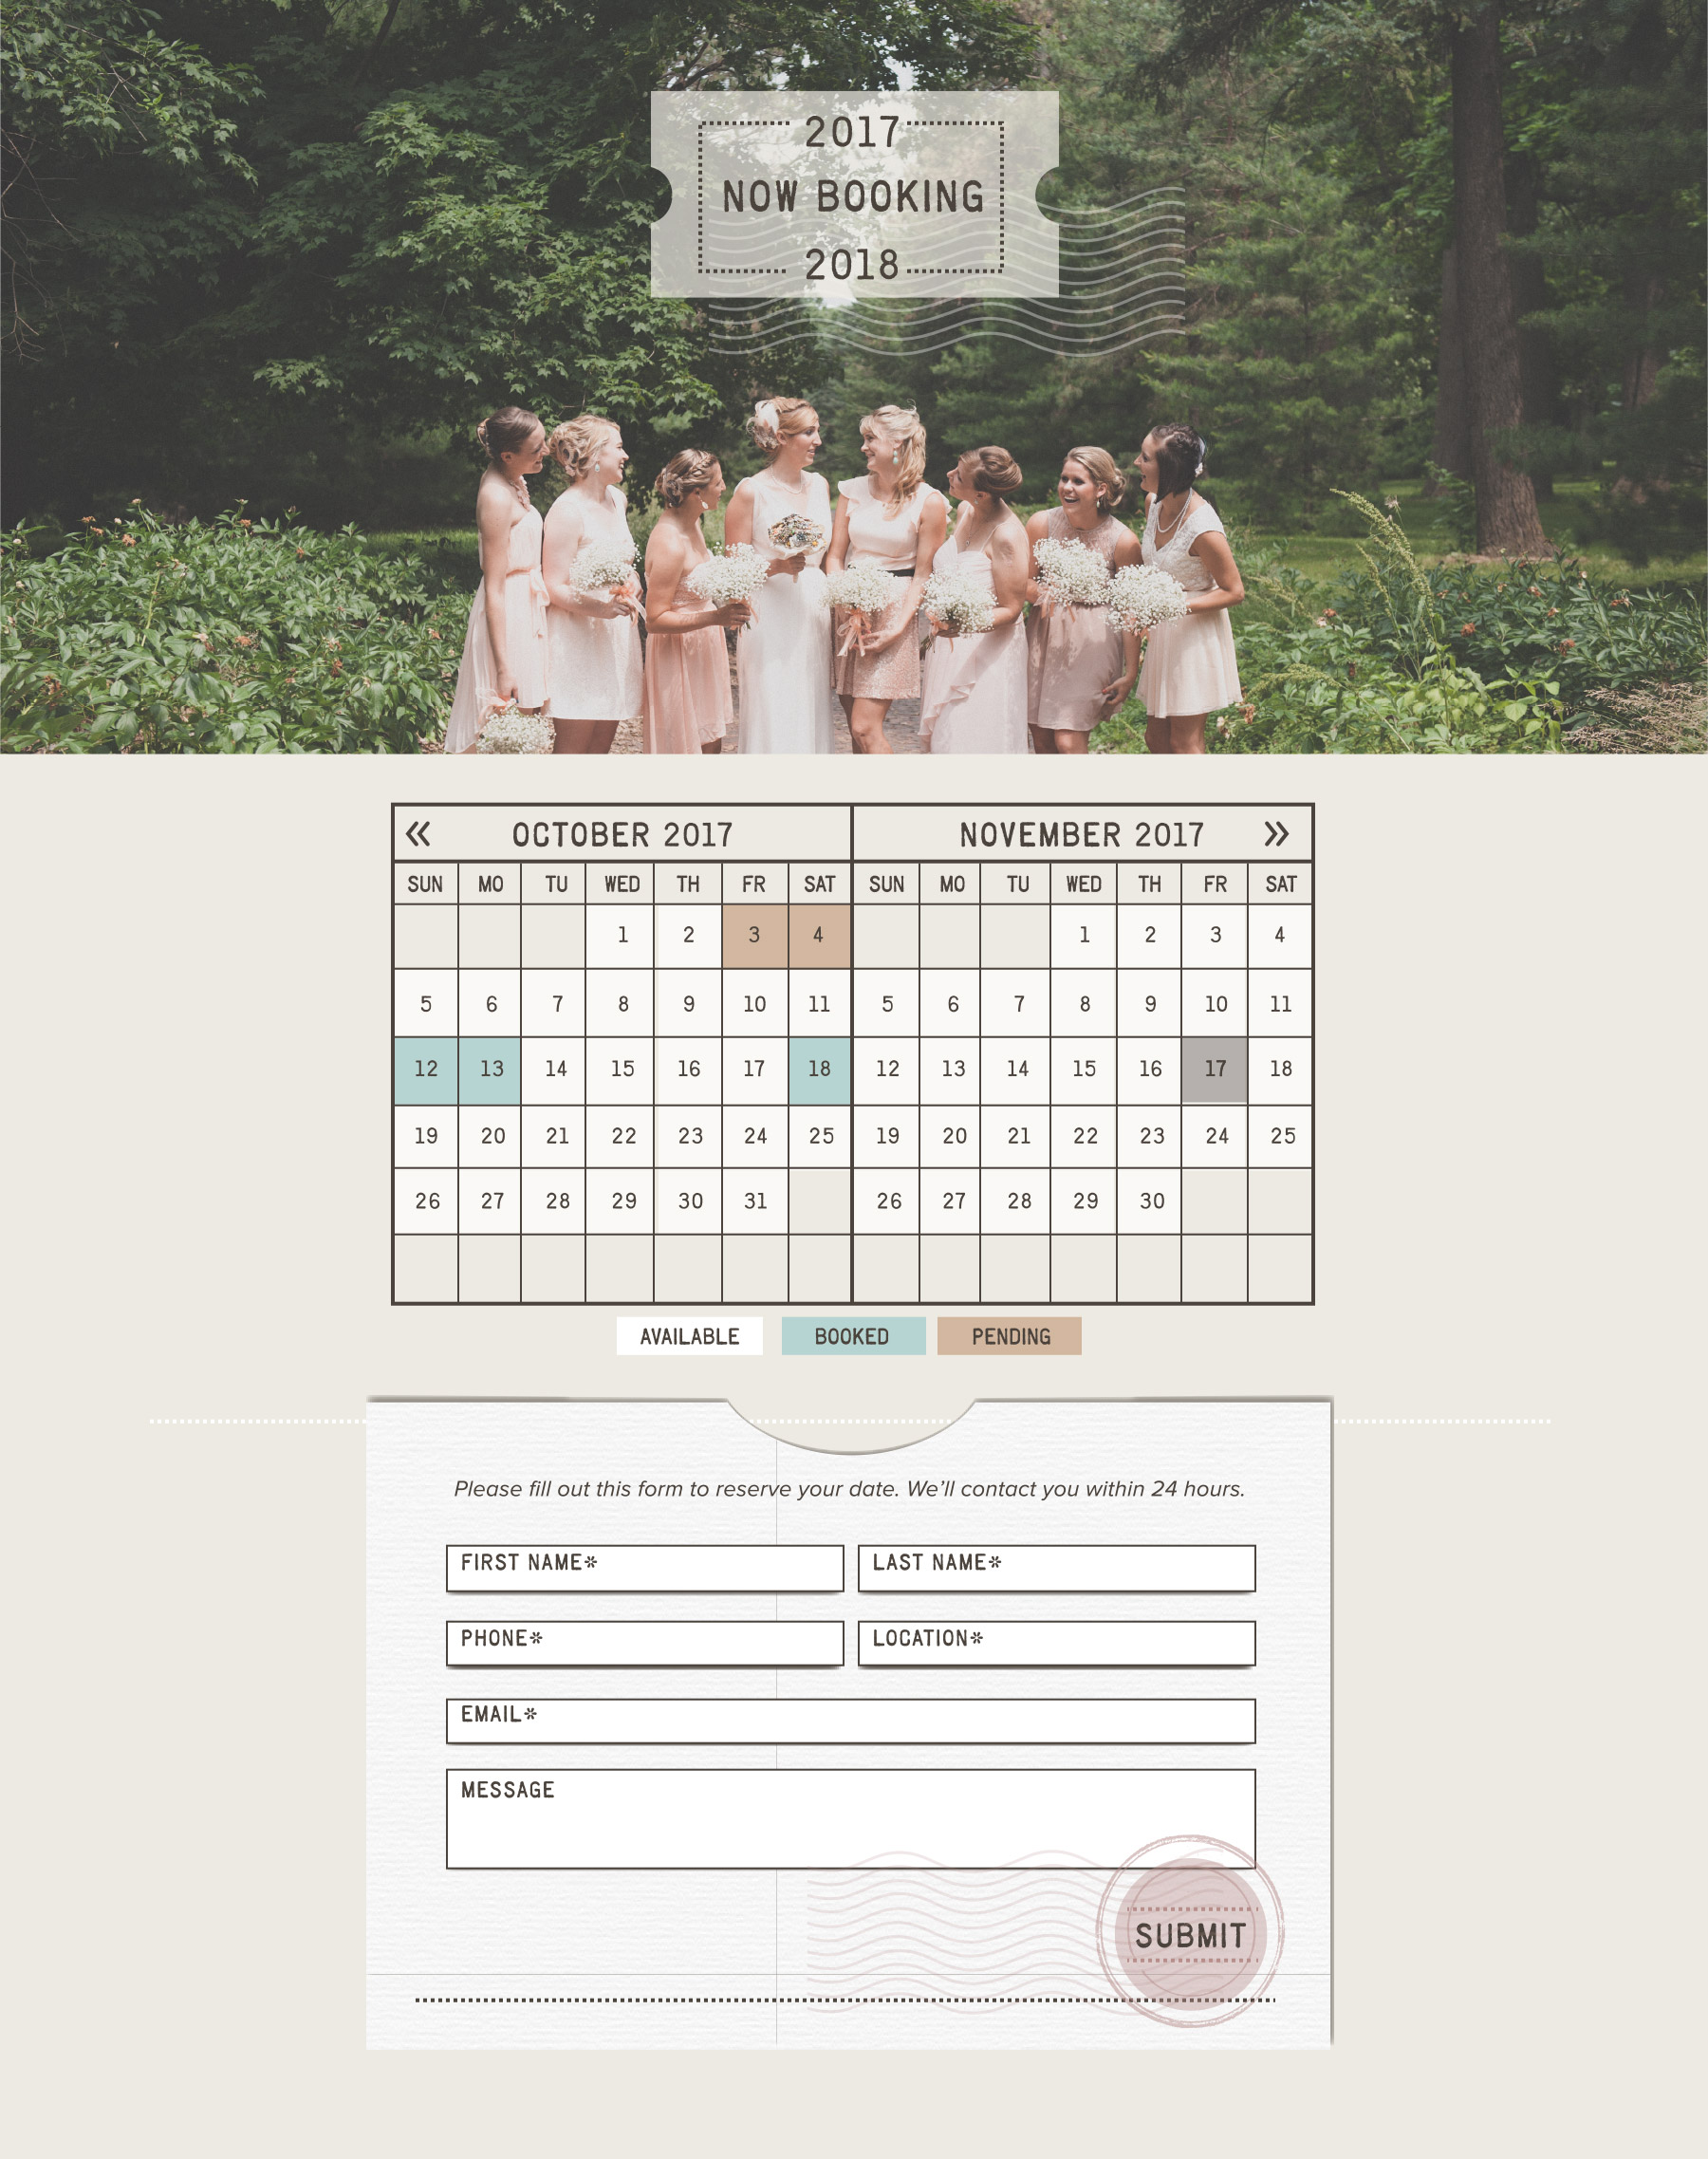 Wedding photography booking calendar and form